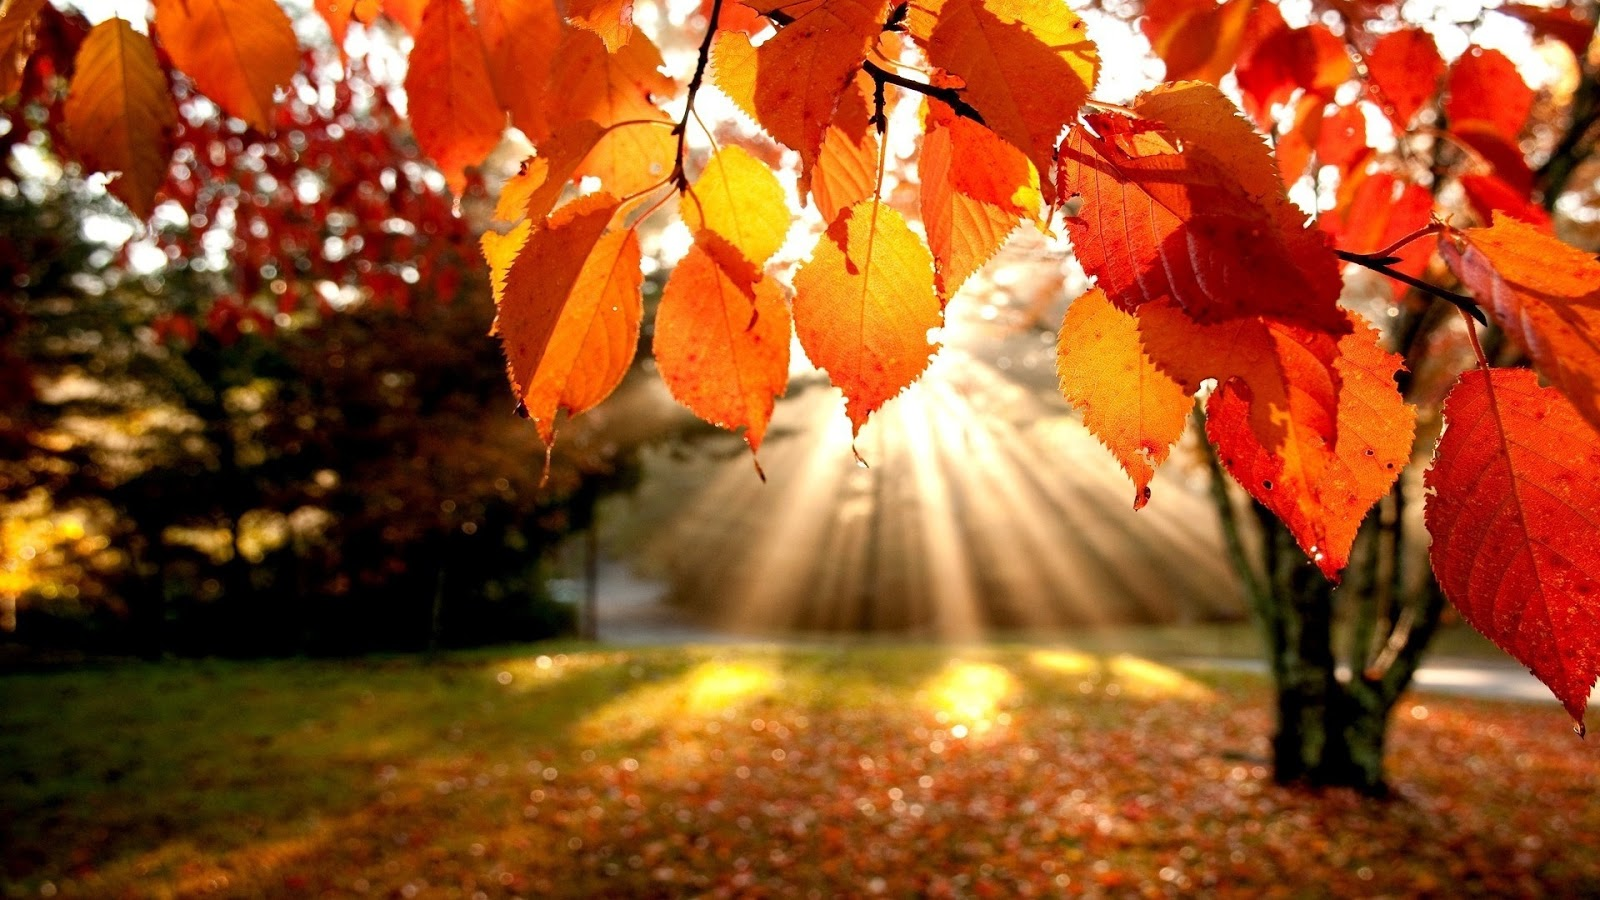 Autumn Leaves in sunshine